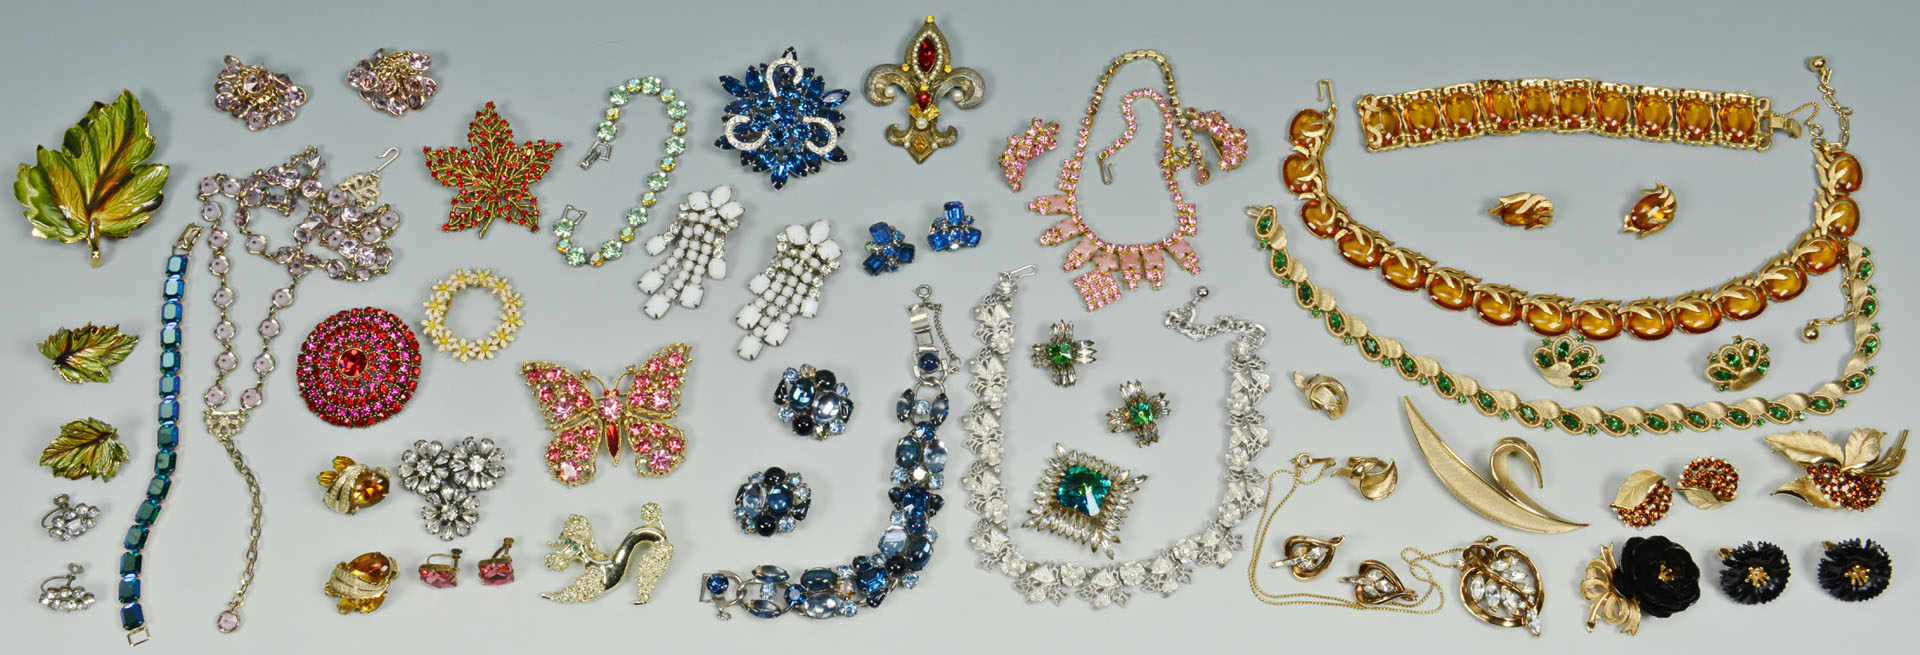 Lot 739: Costume Jewelry: Weiss, Kramer, Trifari